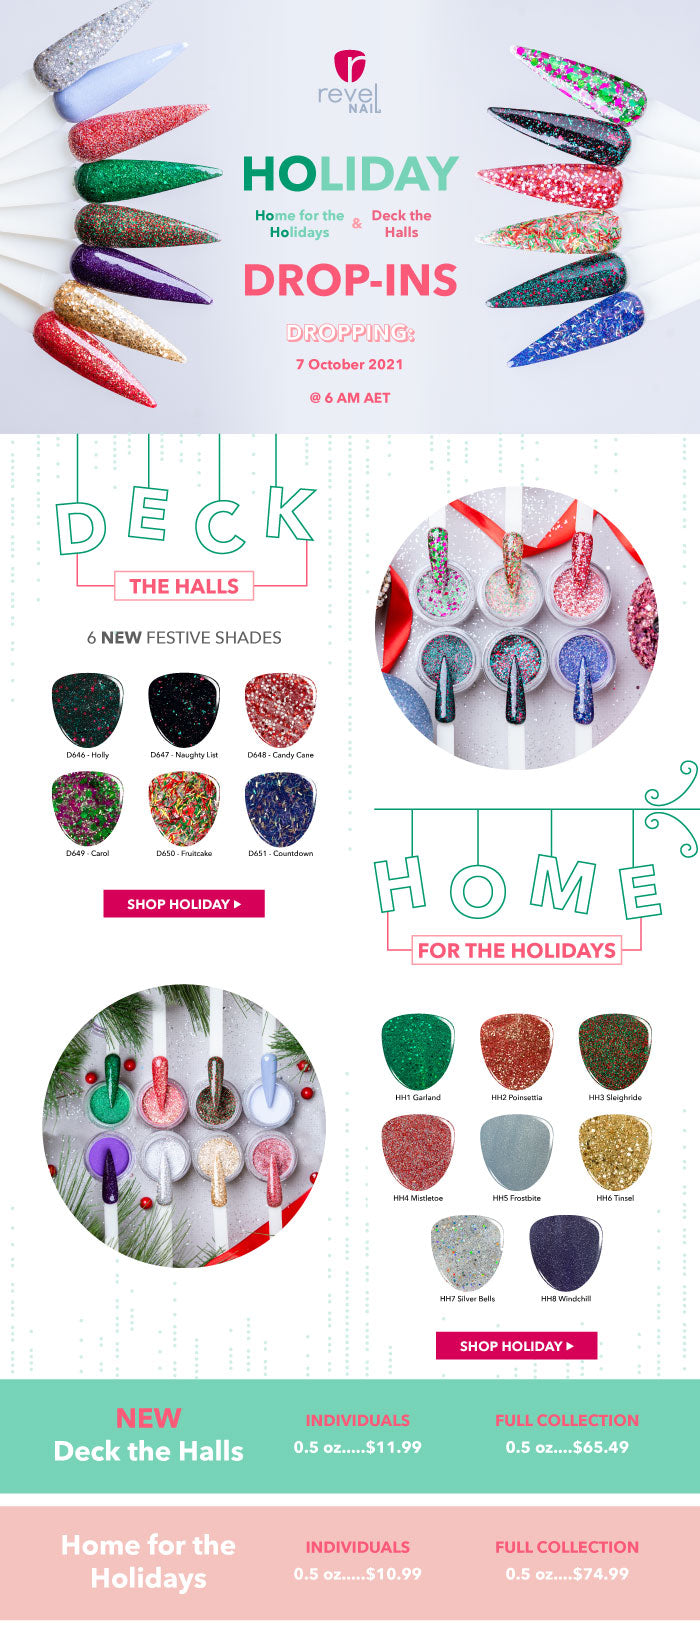 Holiday Drop Ins | Home for the Holidays | Deck the Halls 6 new festive shades | Get your Holiday mani planned and ready to go | Revel Nail Dip Powder | At home nails